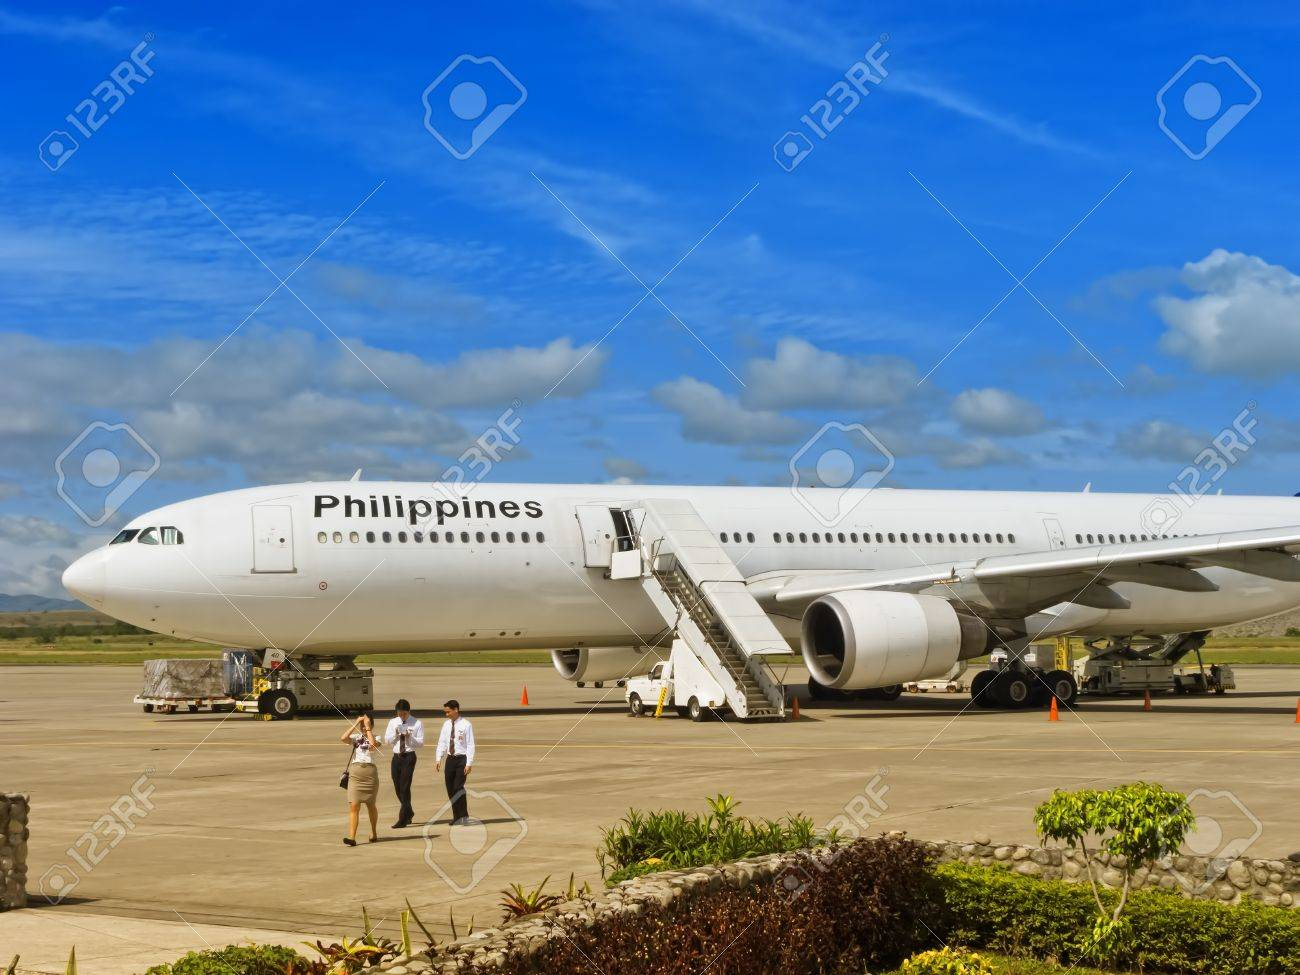 Gensan, Philippines - April 2, 2011: A Philippine Airlines plane waits on the tarmac of Gensan Airport for its flight back to Manila, while the crew walk towards arrival area. Stock Photo - 12679387